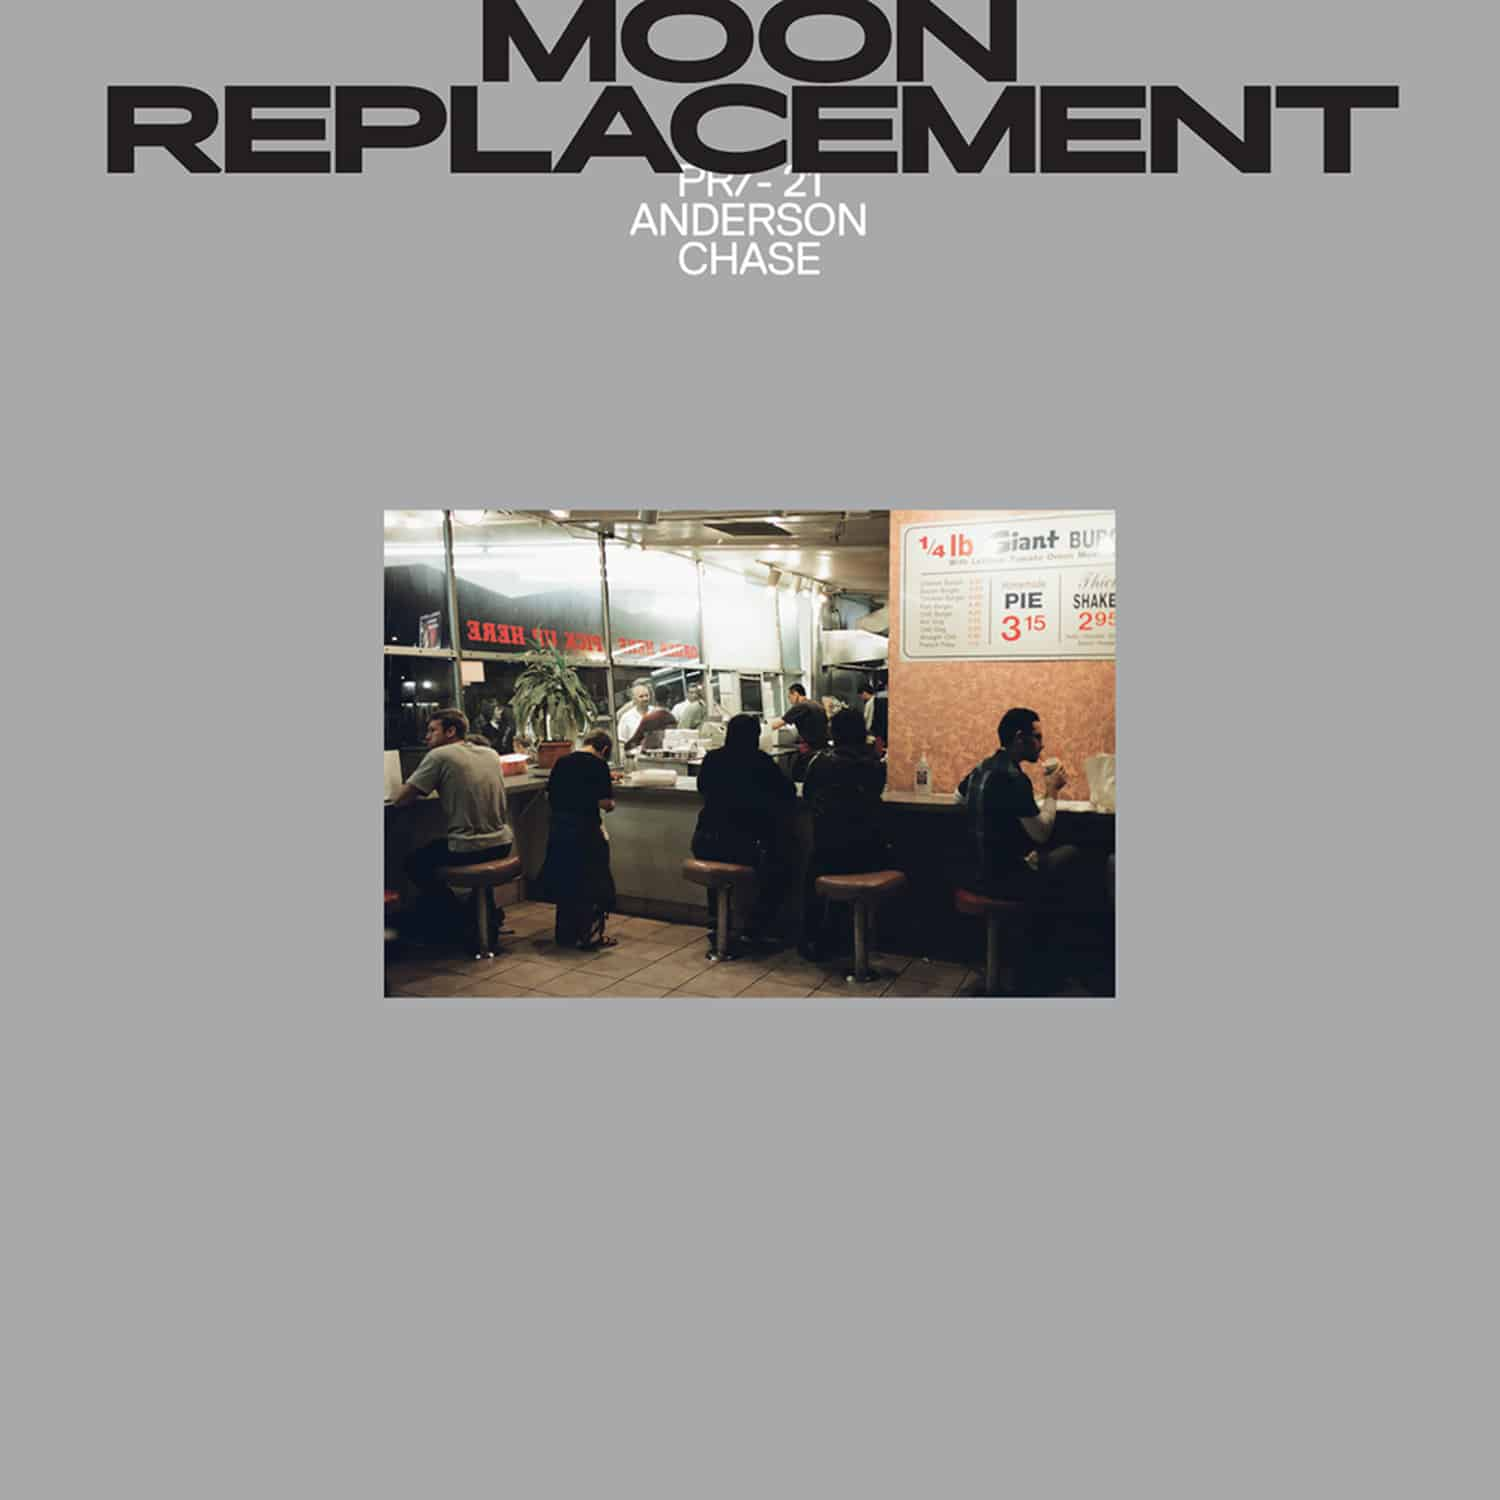 Anderson Chase - MOON REPLACEMENT